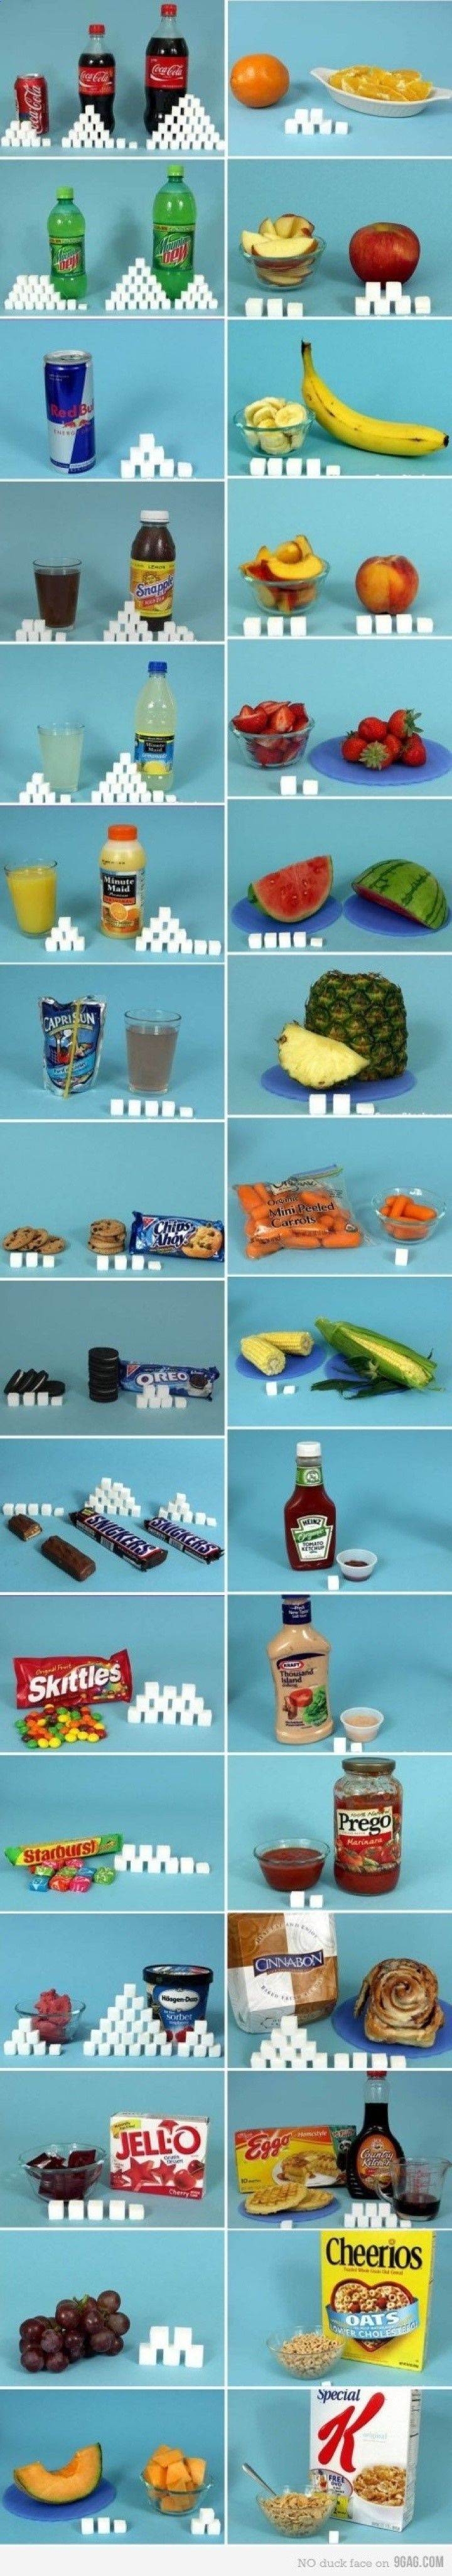 Community Post: The Amount Of Sugar In Food, Expressed In Sugar Cubes